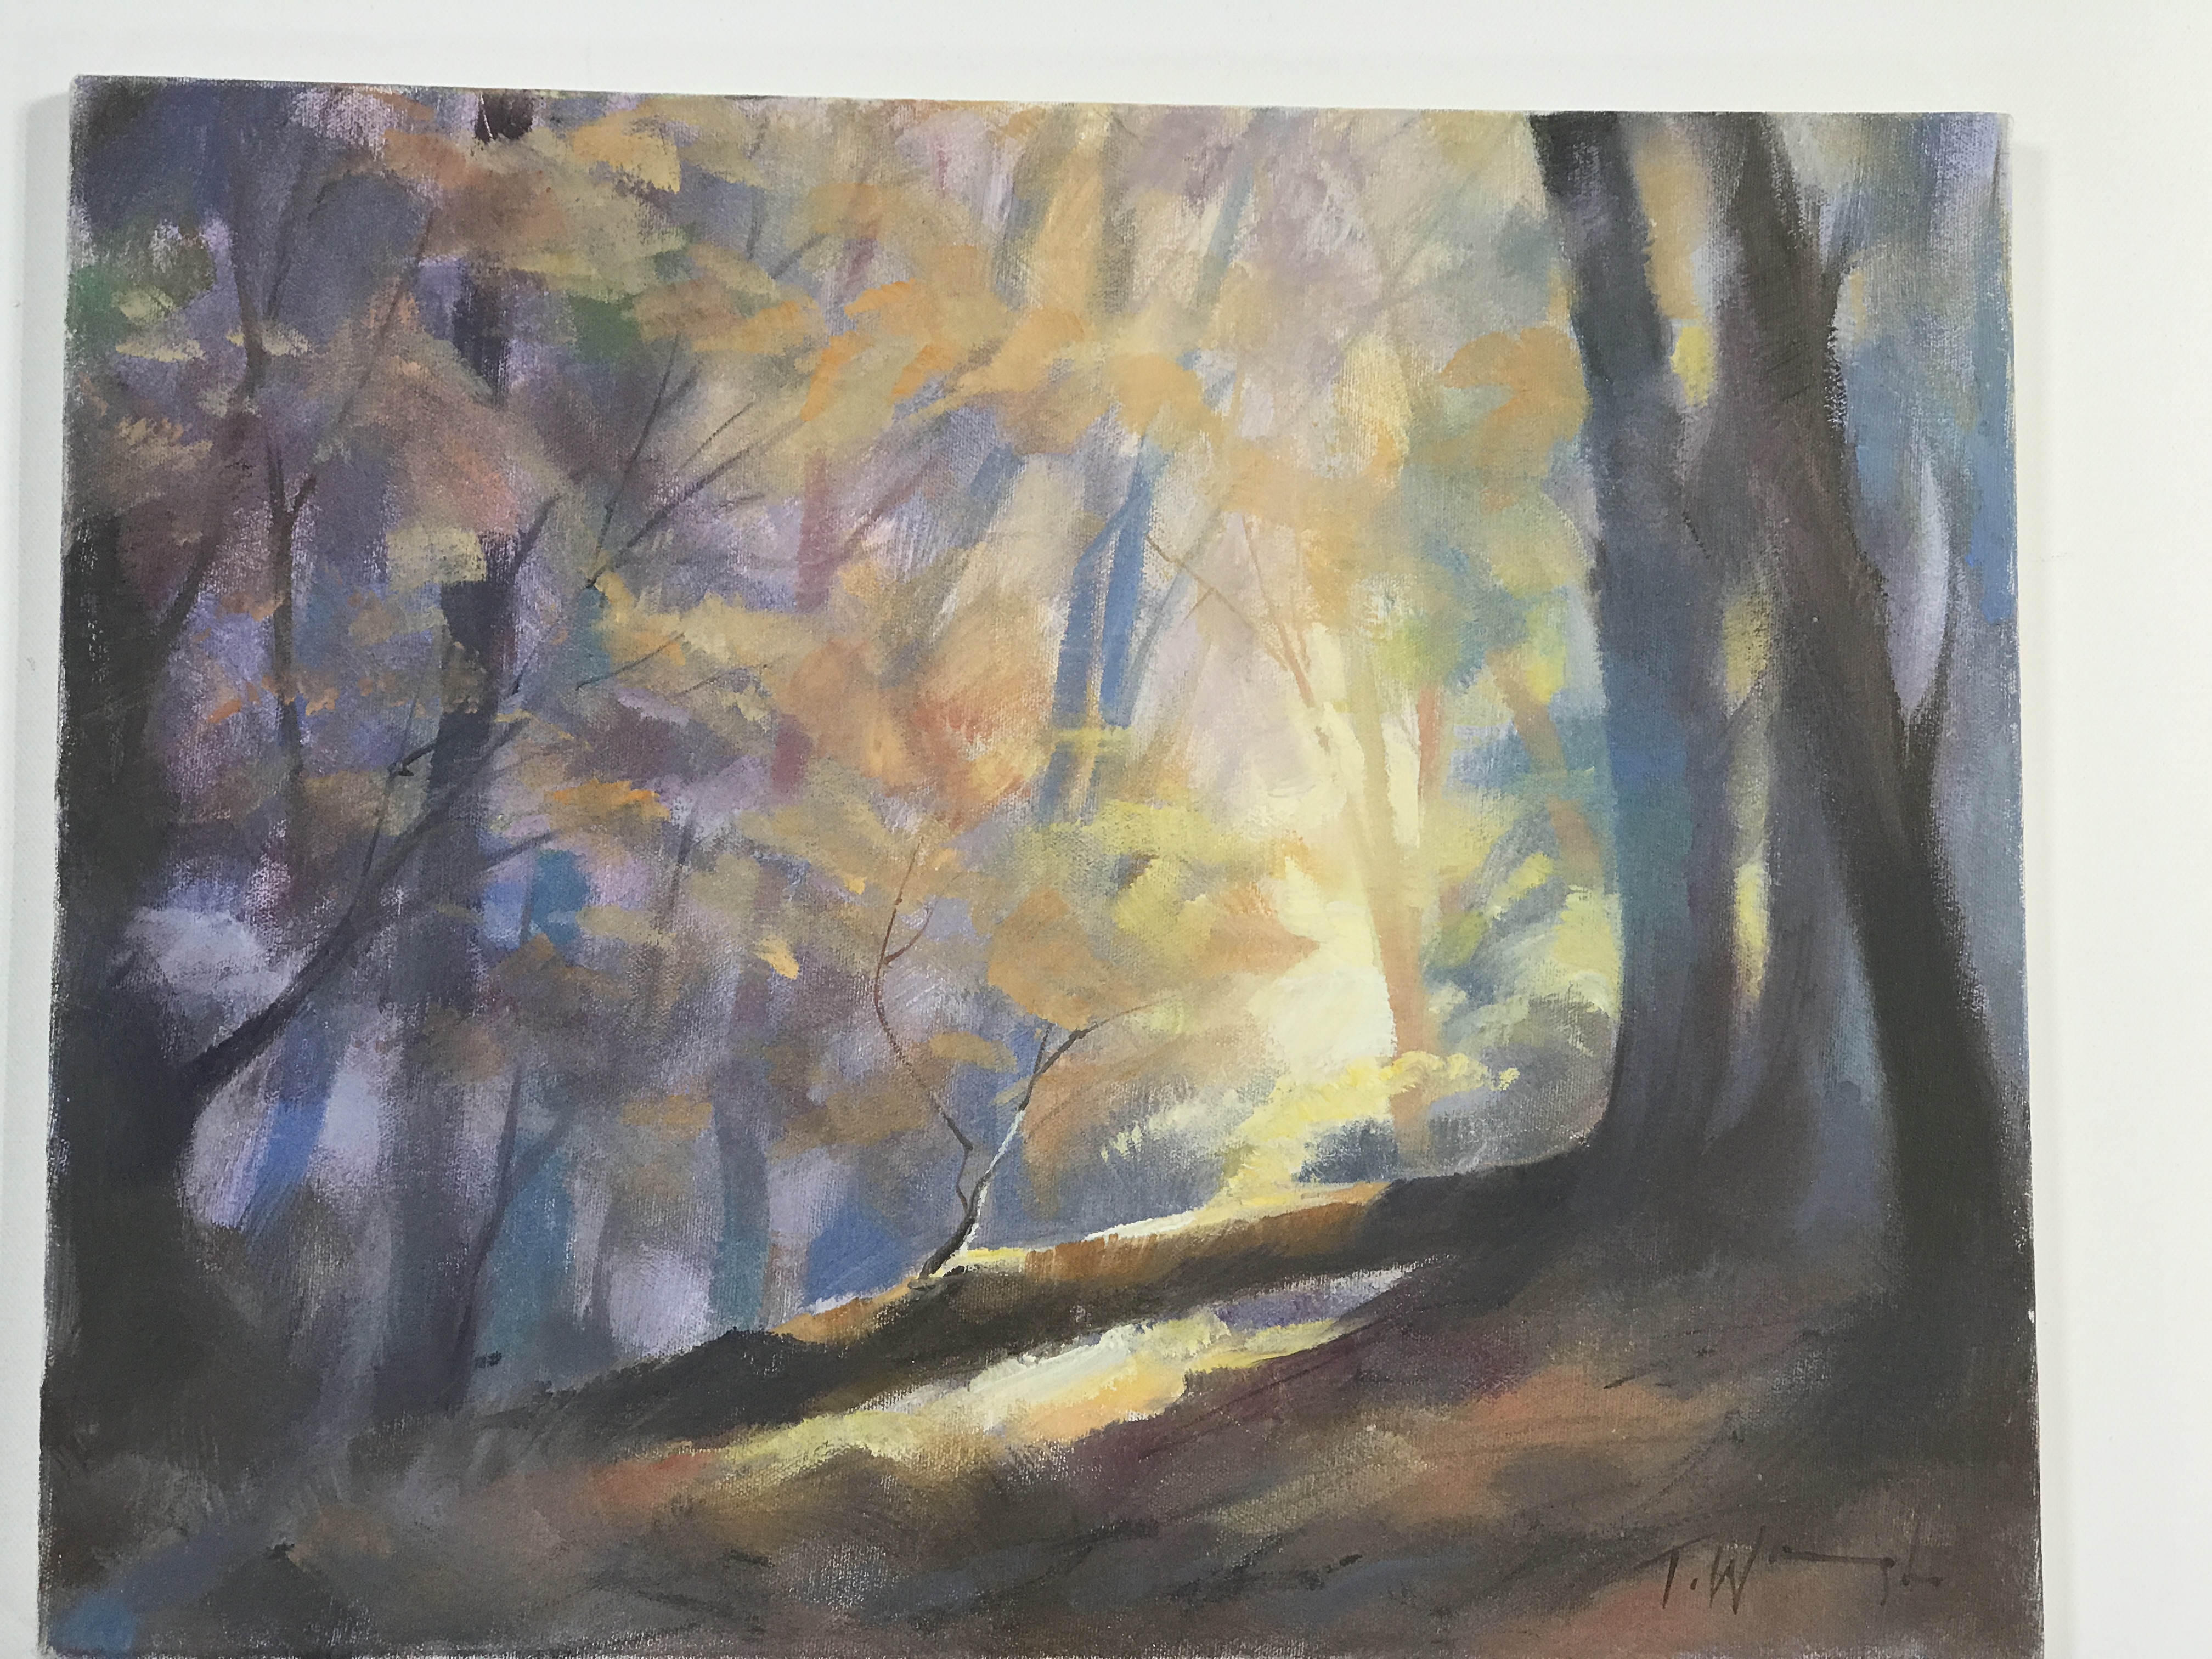 Trevor Waugh, The Fallen Tree, original oil painting. This piece has autumnal tones depicting a forest scene at dusk.